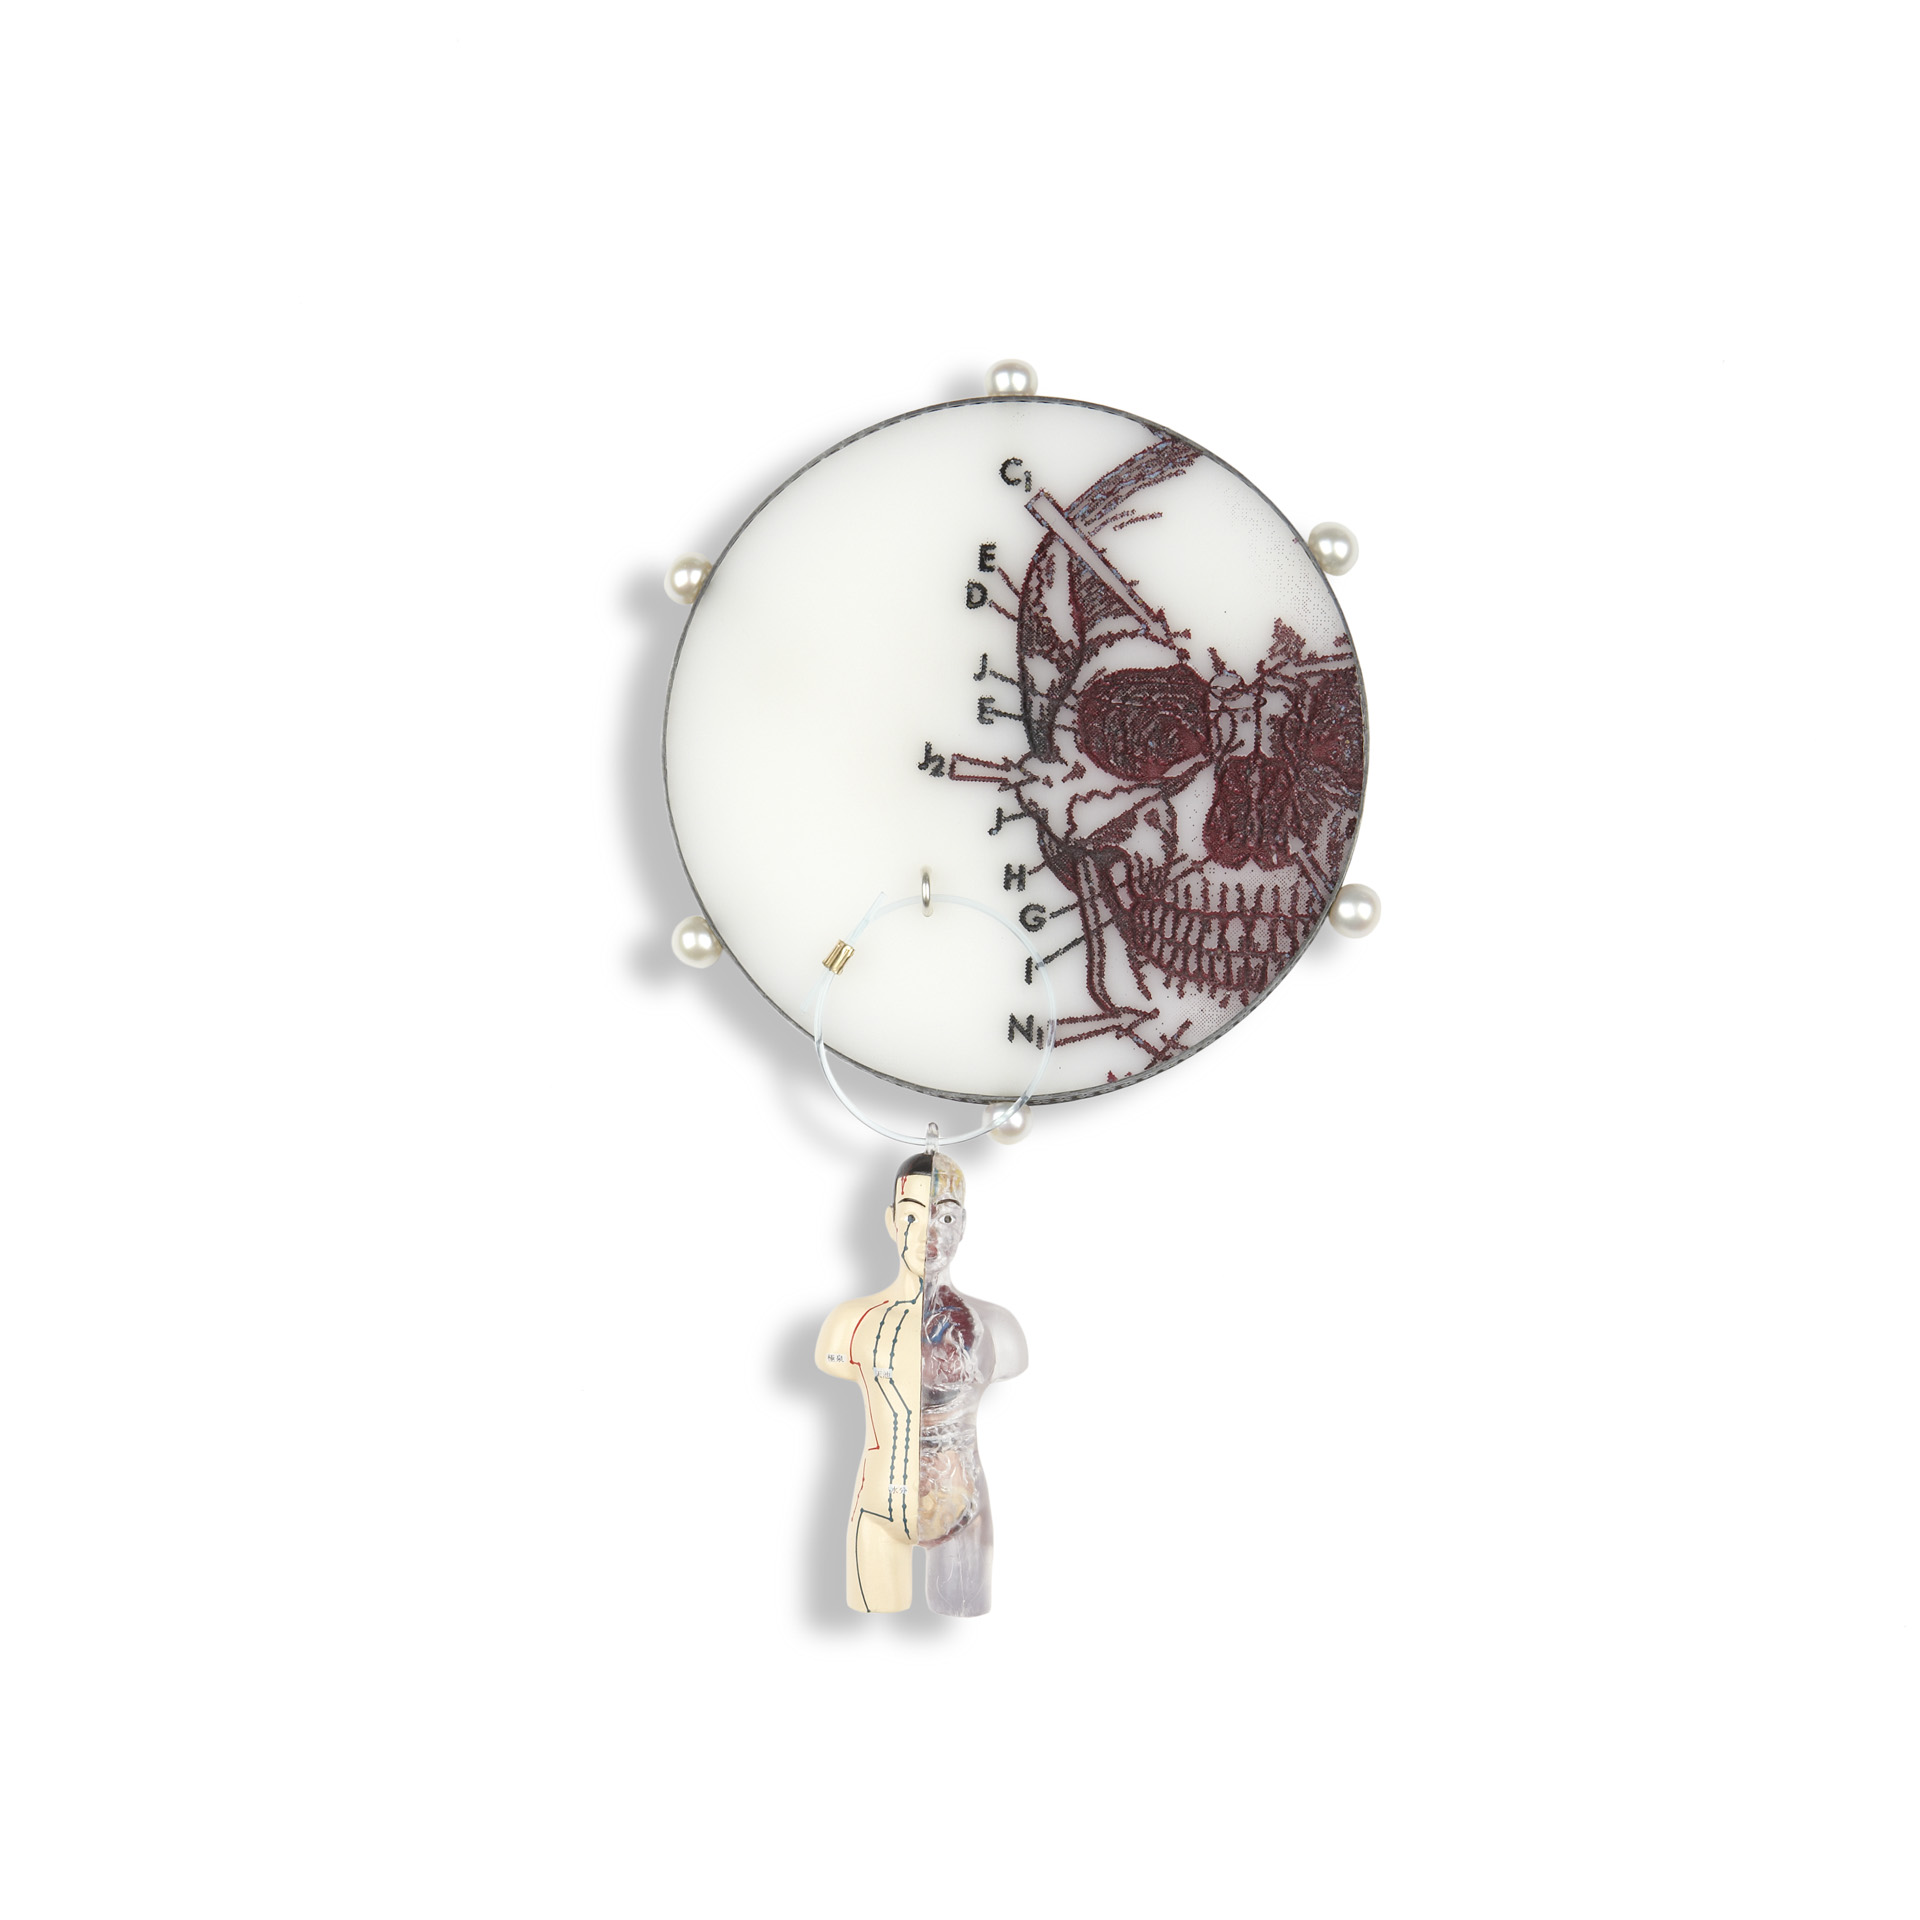 'Fragments & Curiosities' 2011. Brooch; Oxidised silver, Perspex, cultured pearl, 18ct Y gold detail, readymade